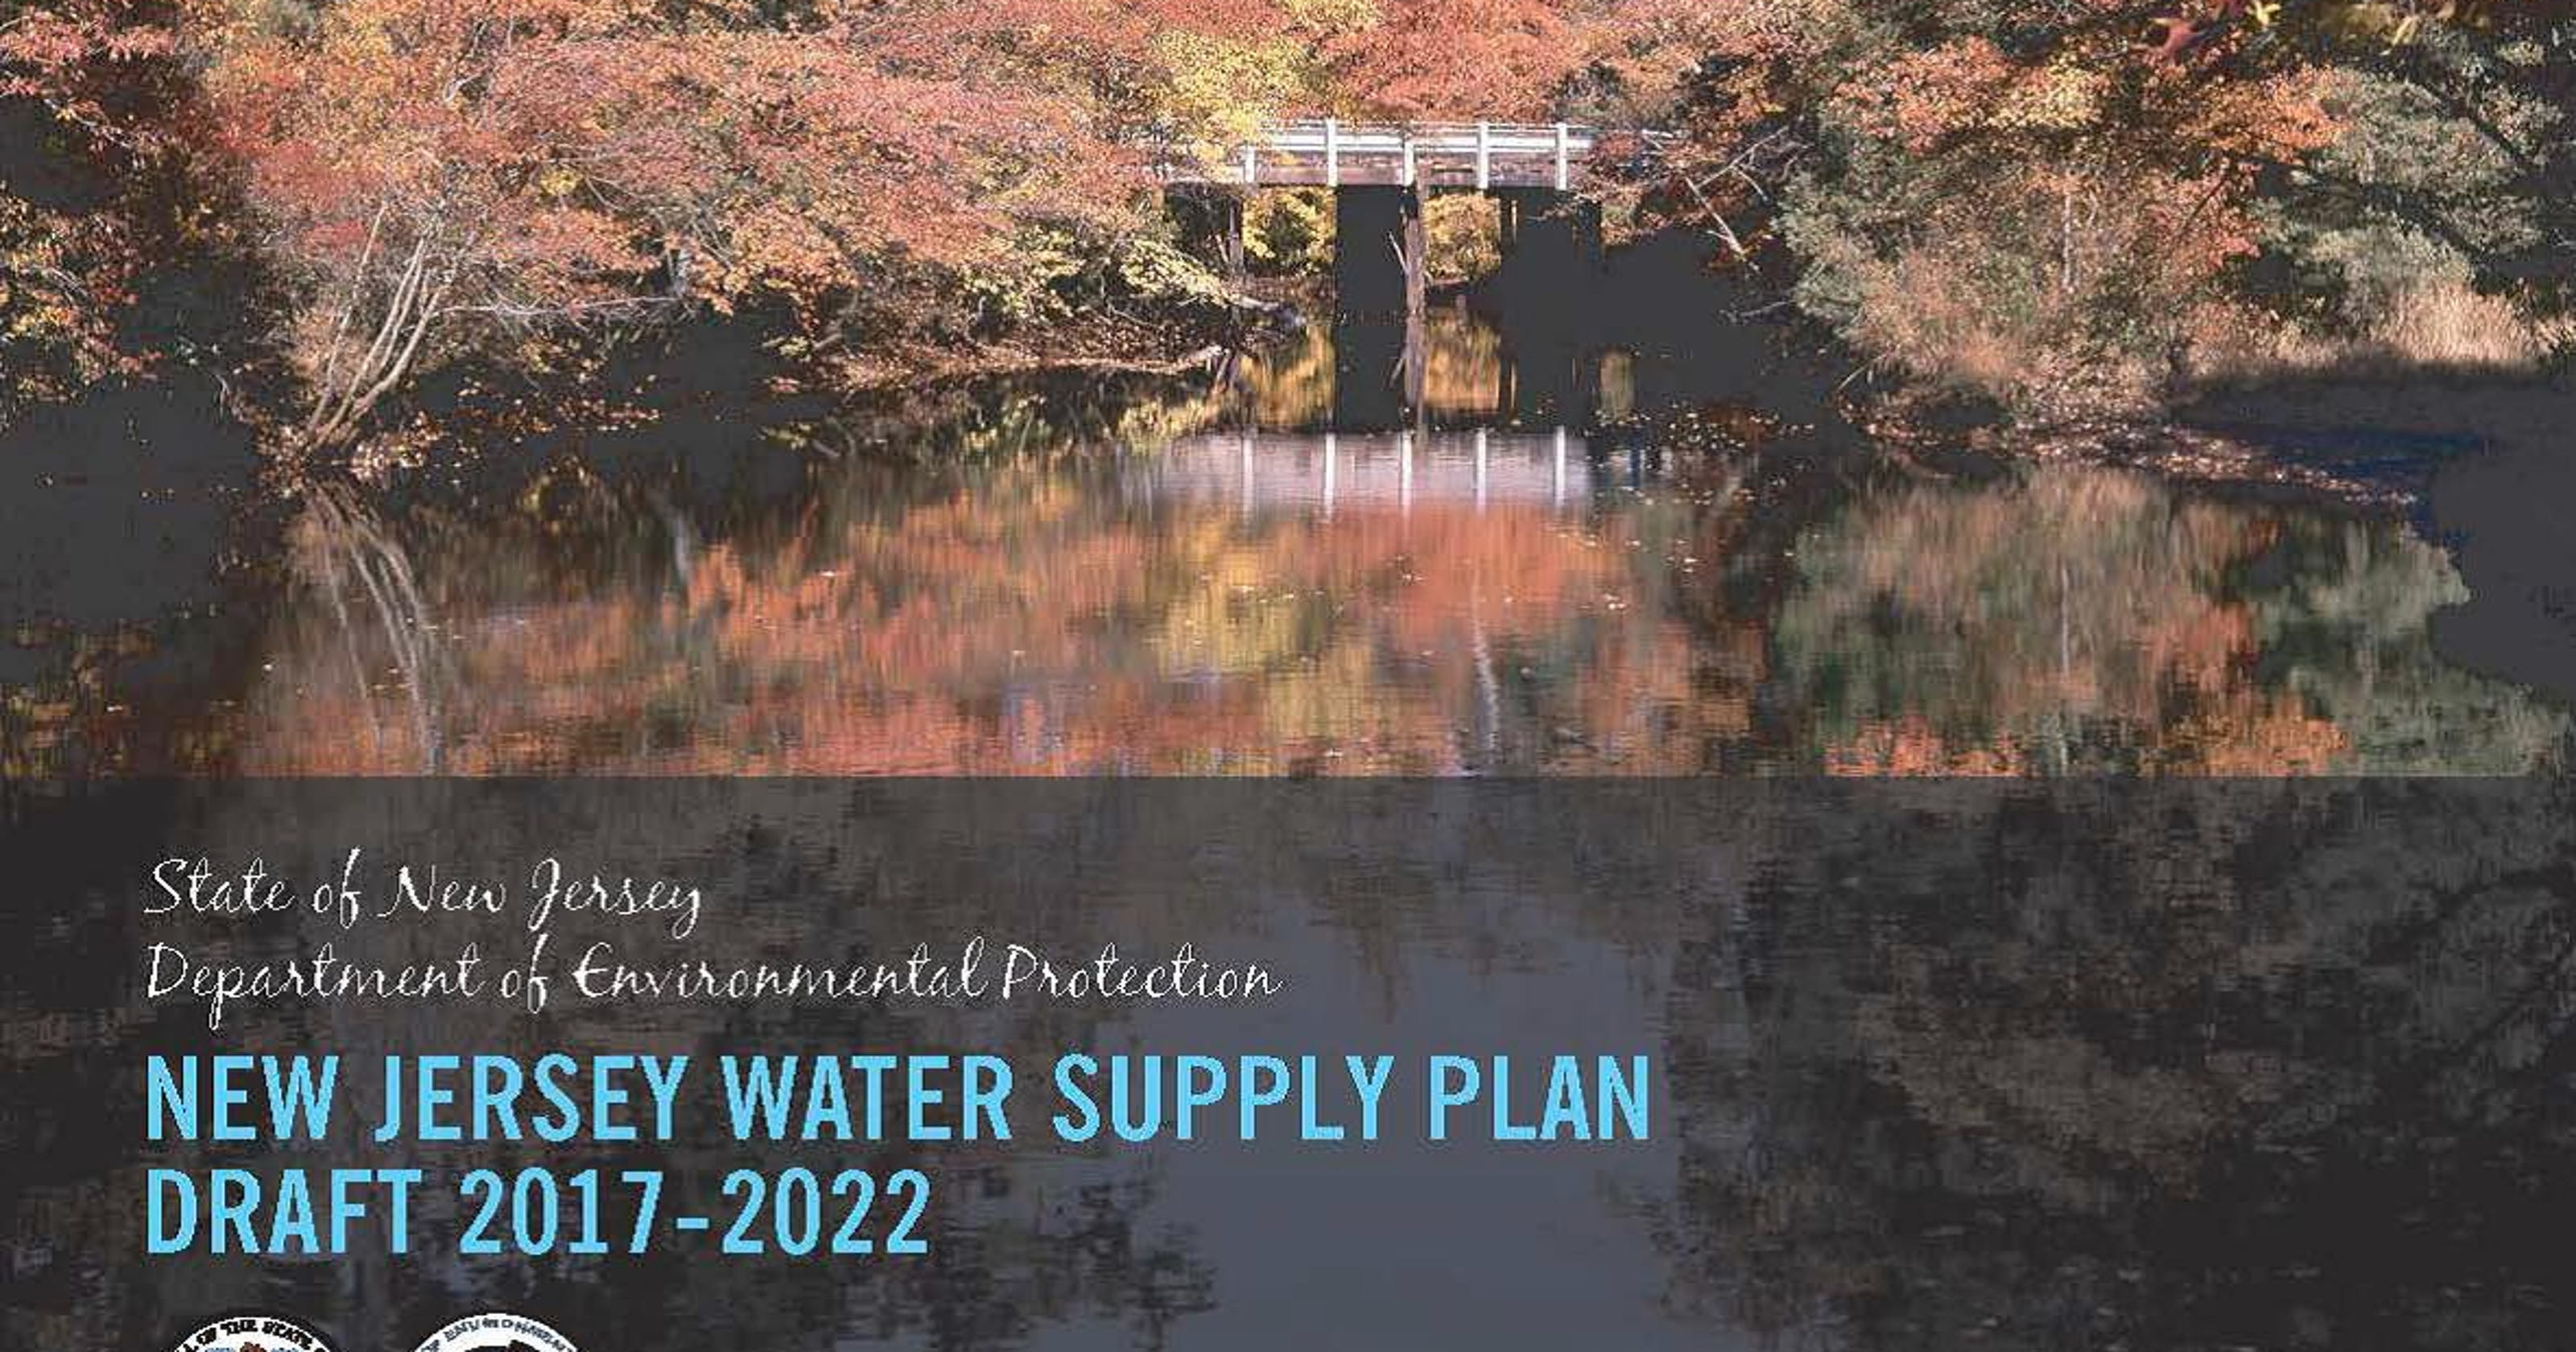 new jersey has many stressed drinking water supplies